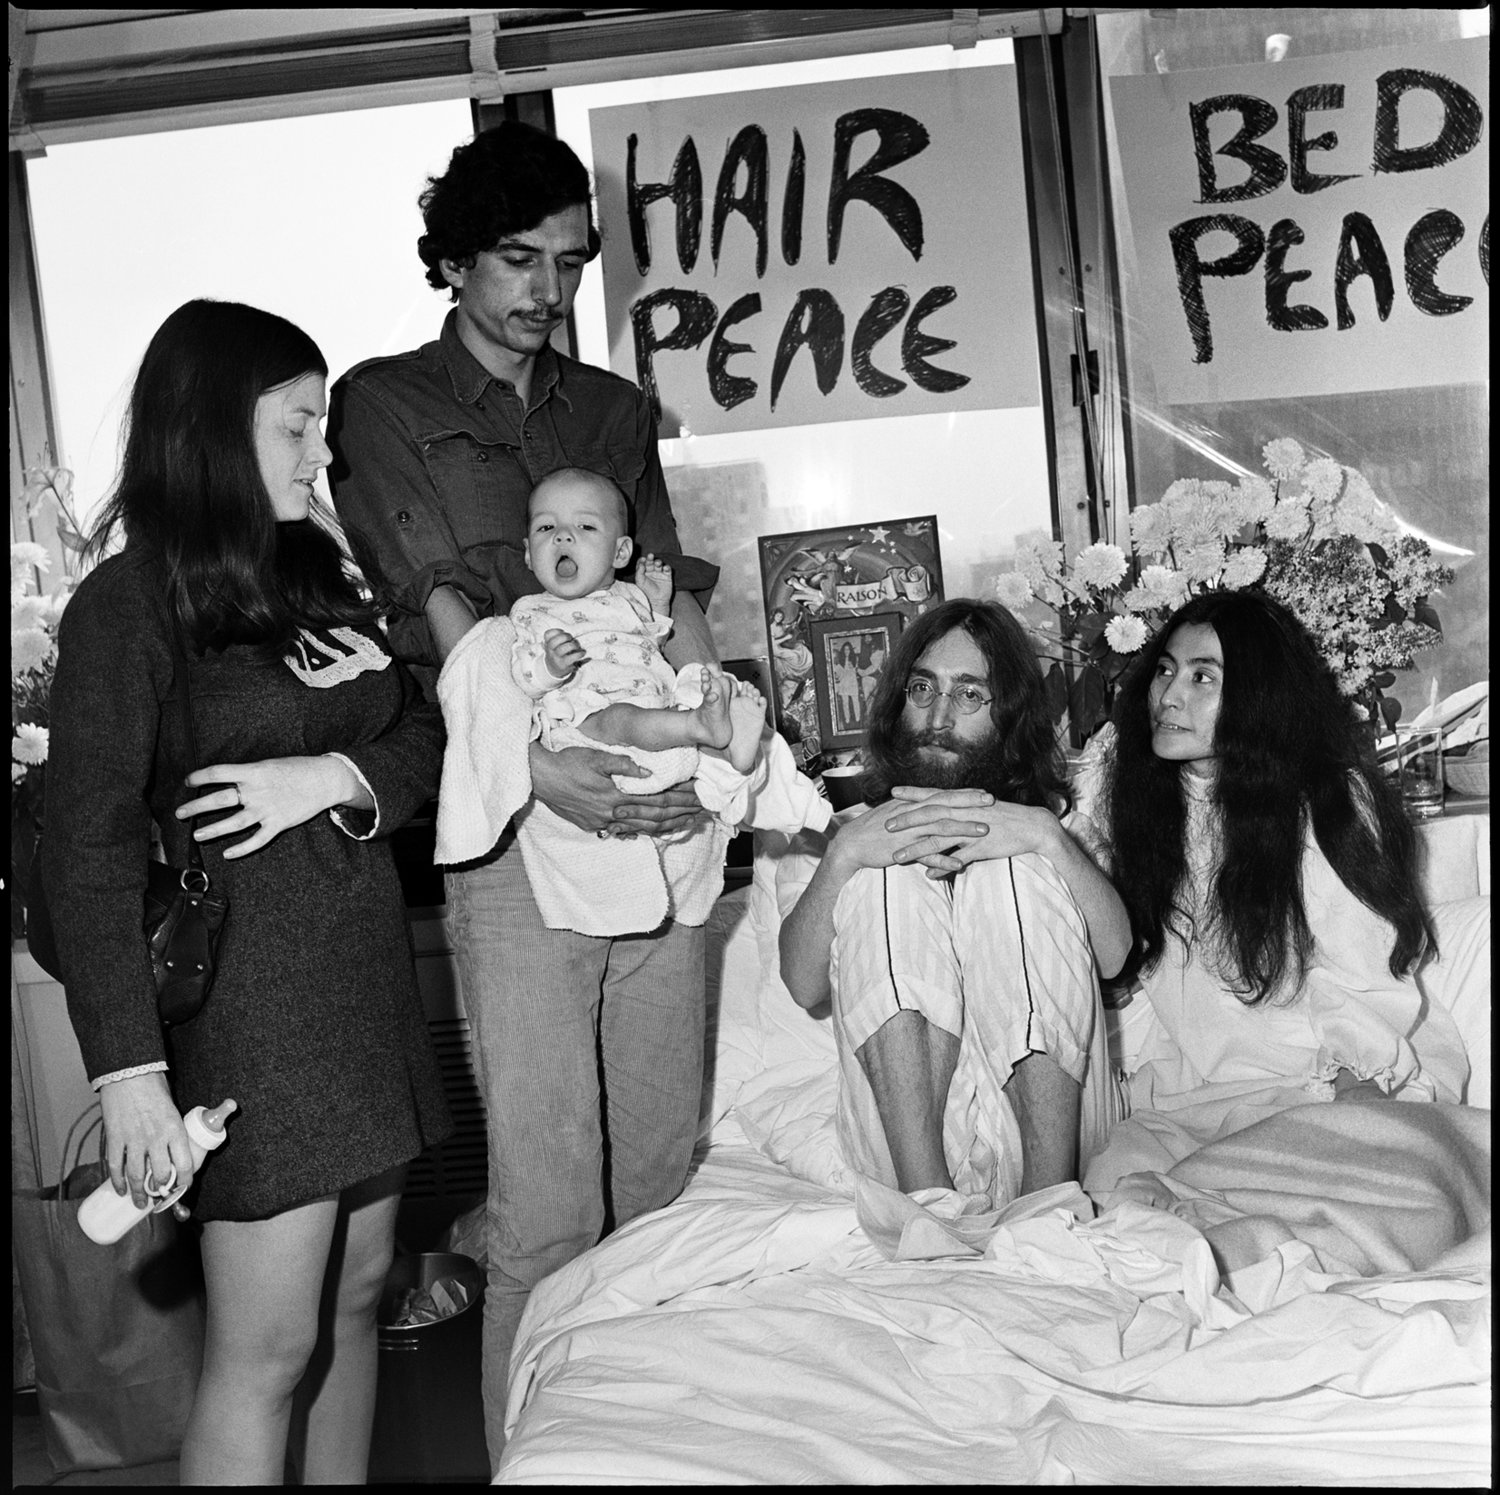 Hair Peace/Bed Peace, Montreal, 1969